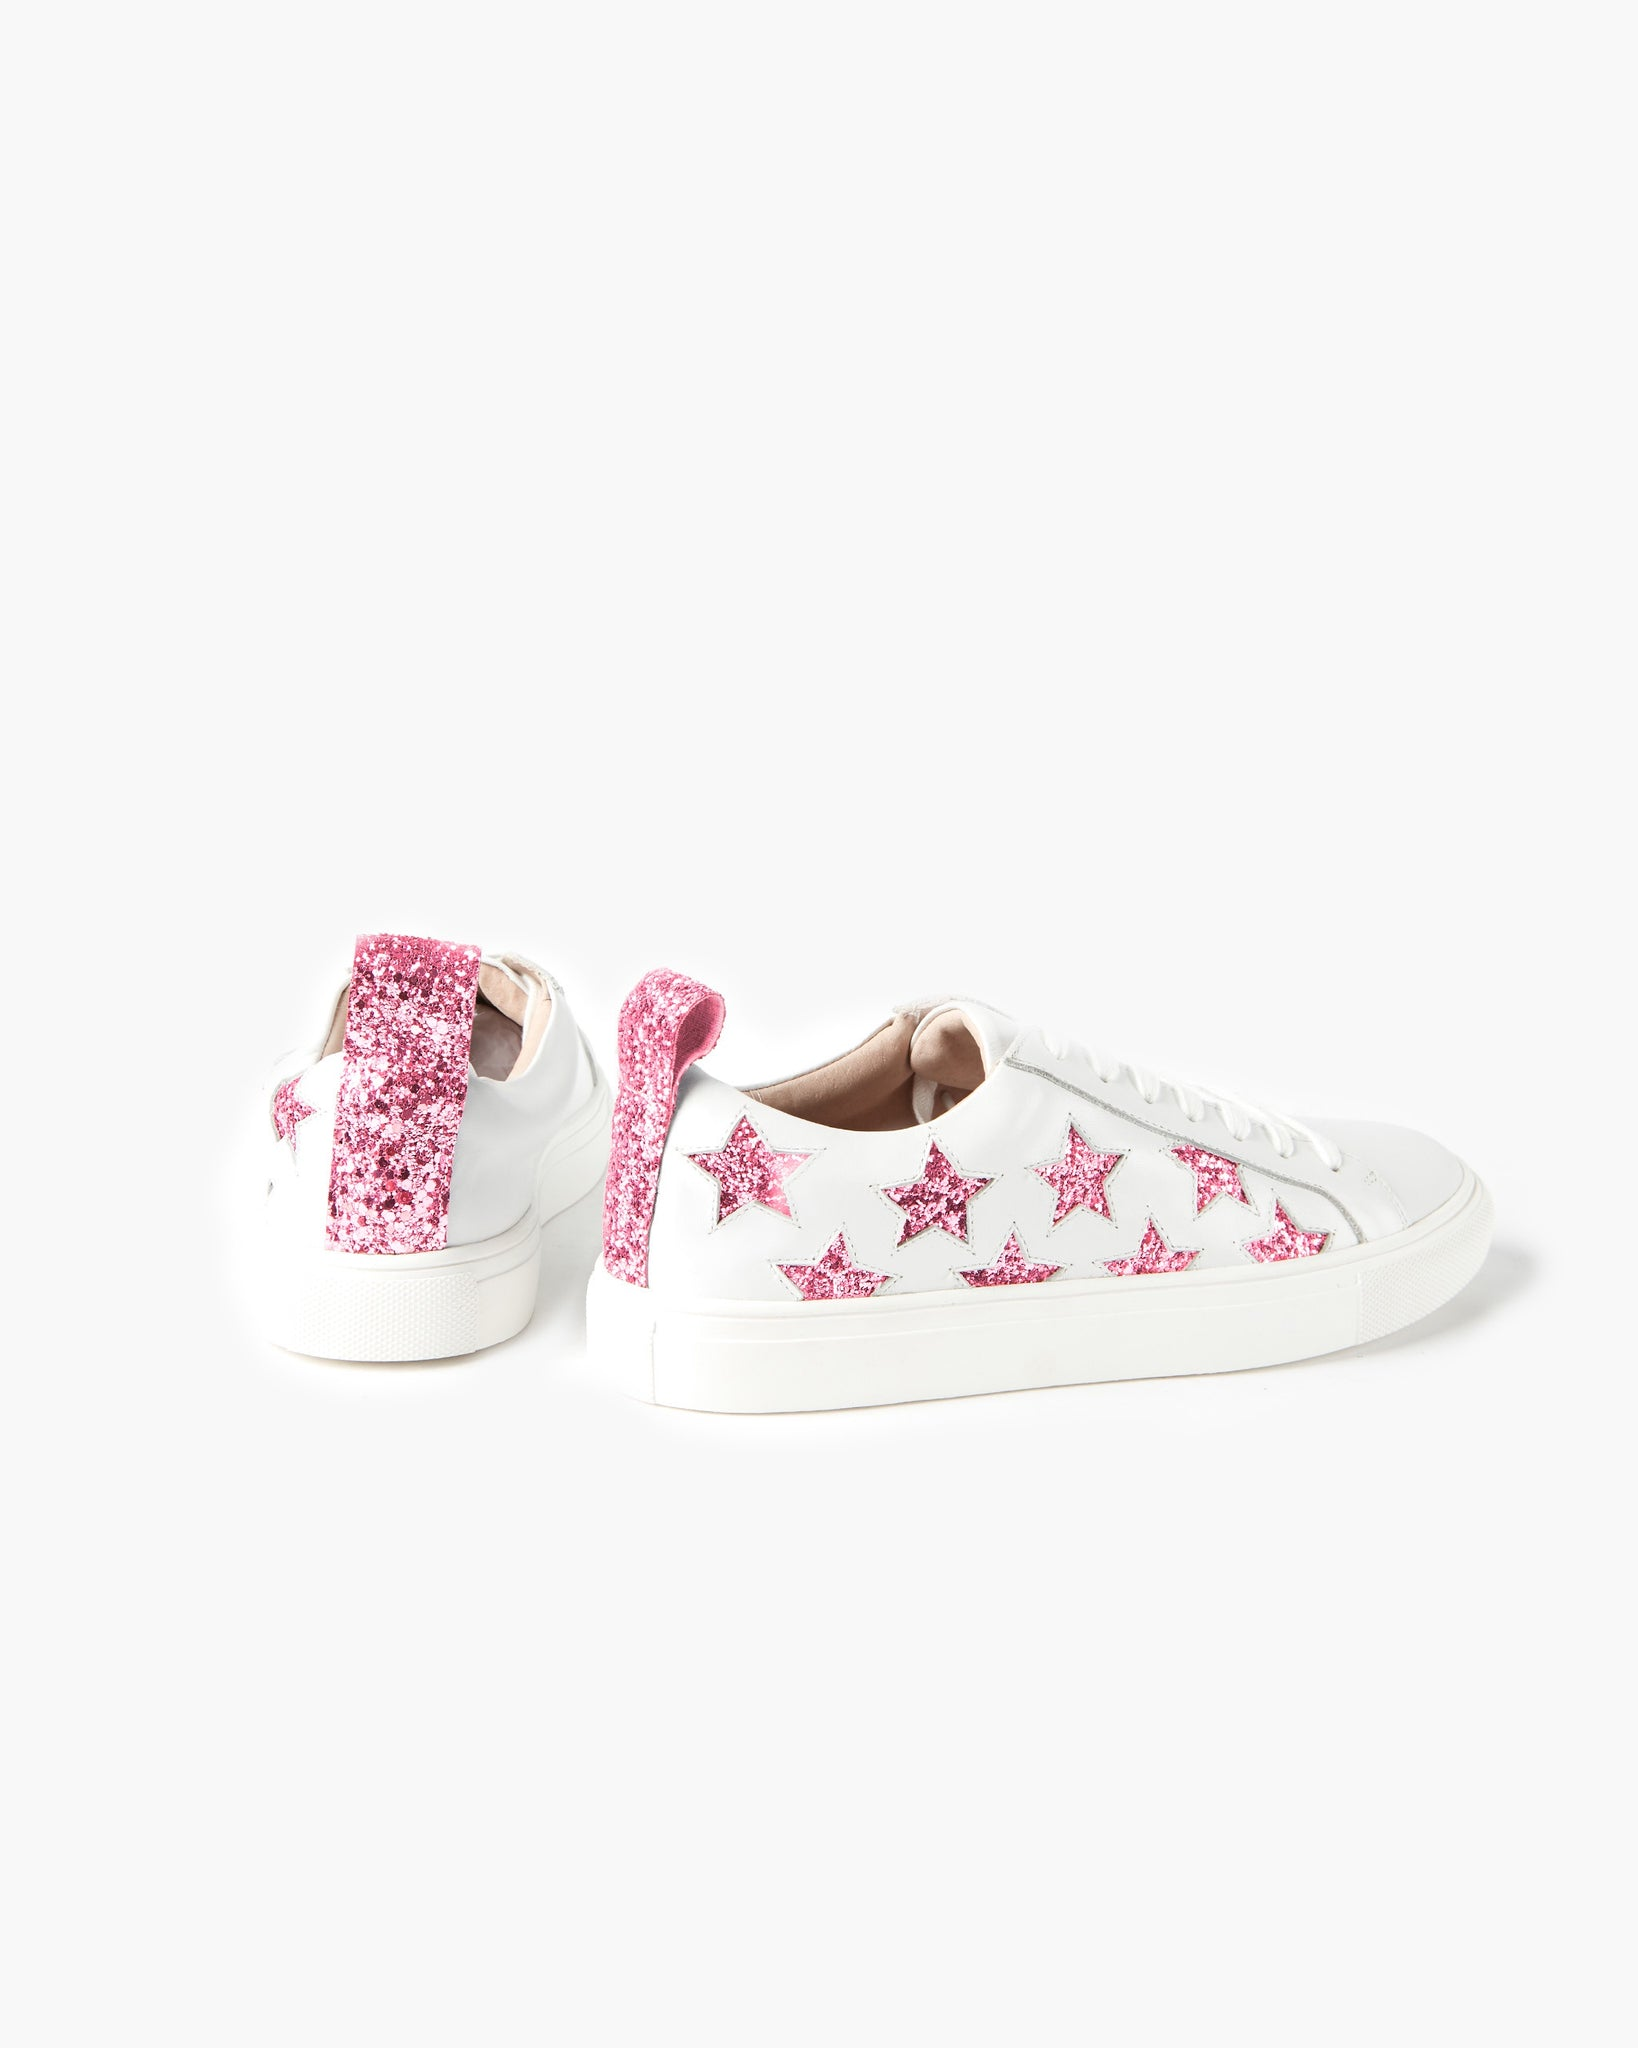 Haven Mini Sneaker - Pink Glitter Star